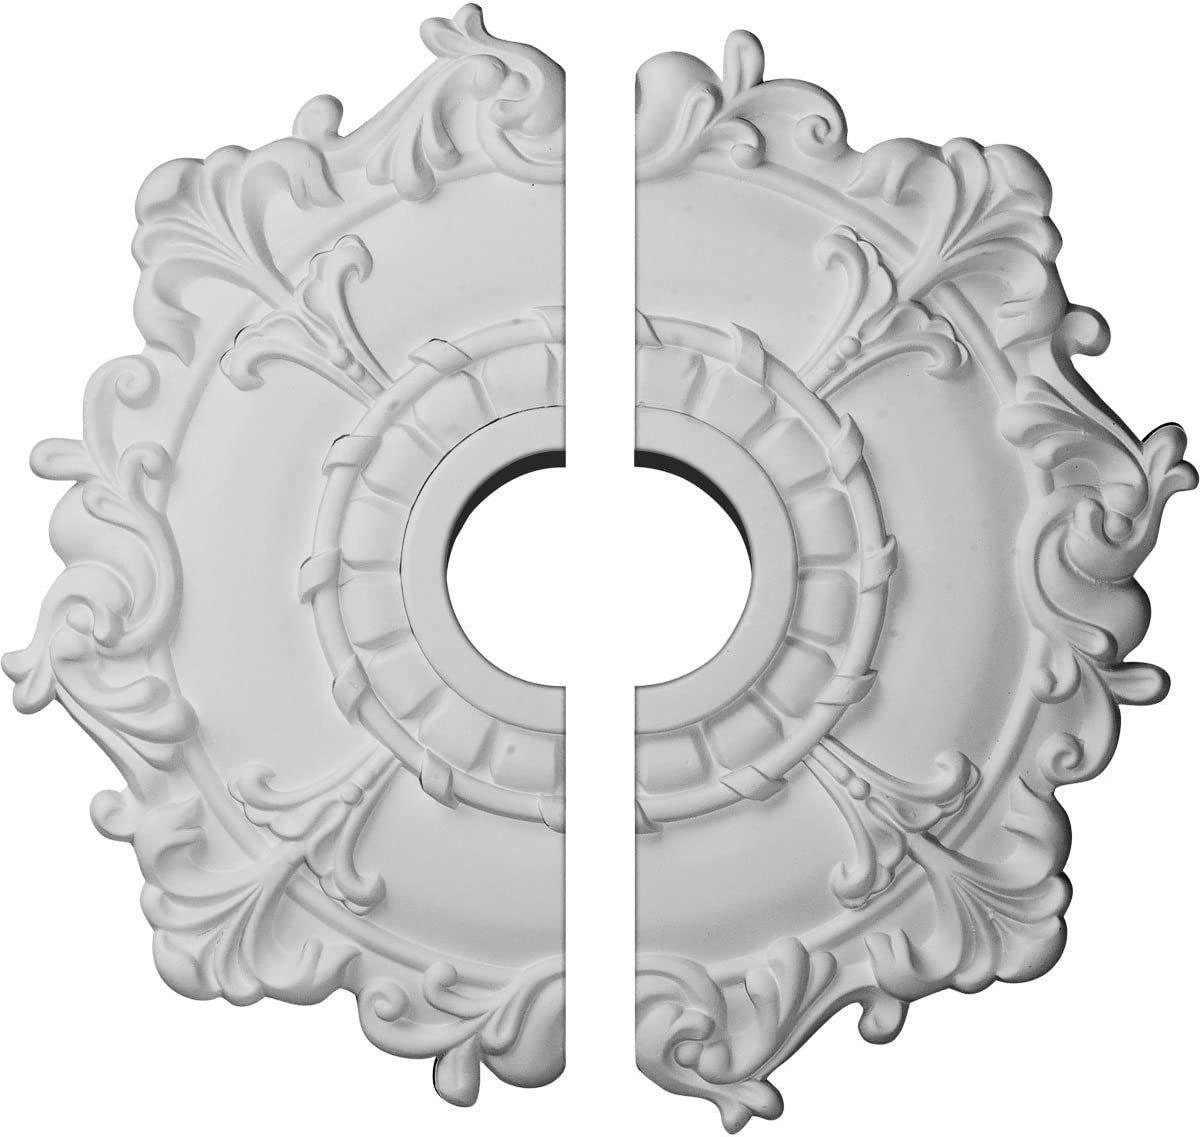 "Ekena Millwork CM18RL2 Riley Ceiling Medallion, 18""OD x 3 1/2""ID x 1 1/2""P (Fits Canopies up to 4 5/8""), Factory Primed"